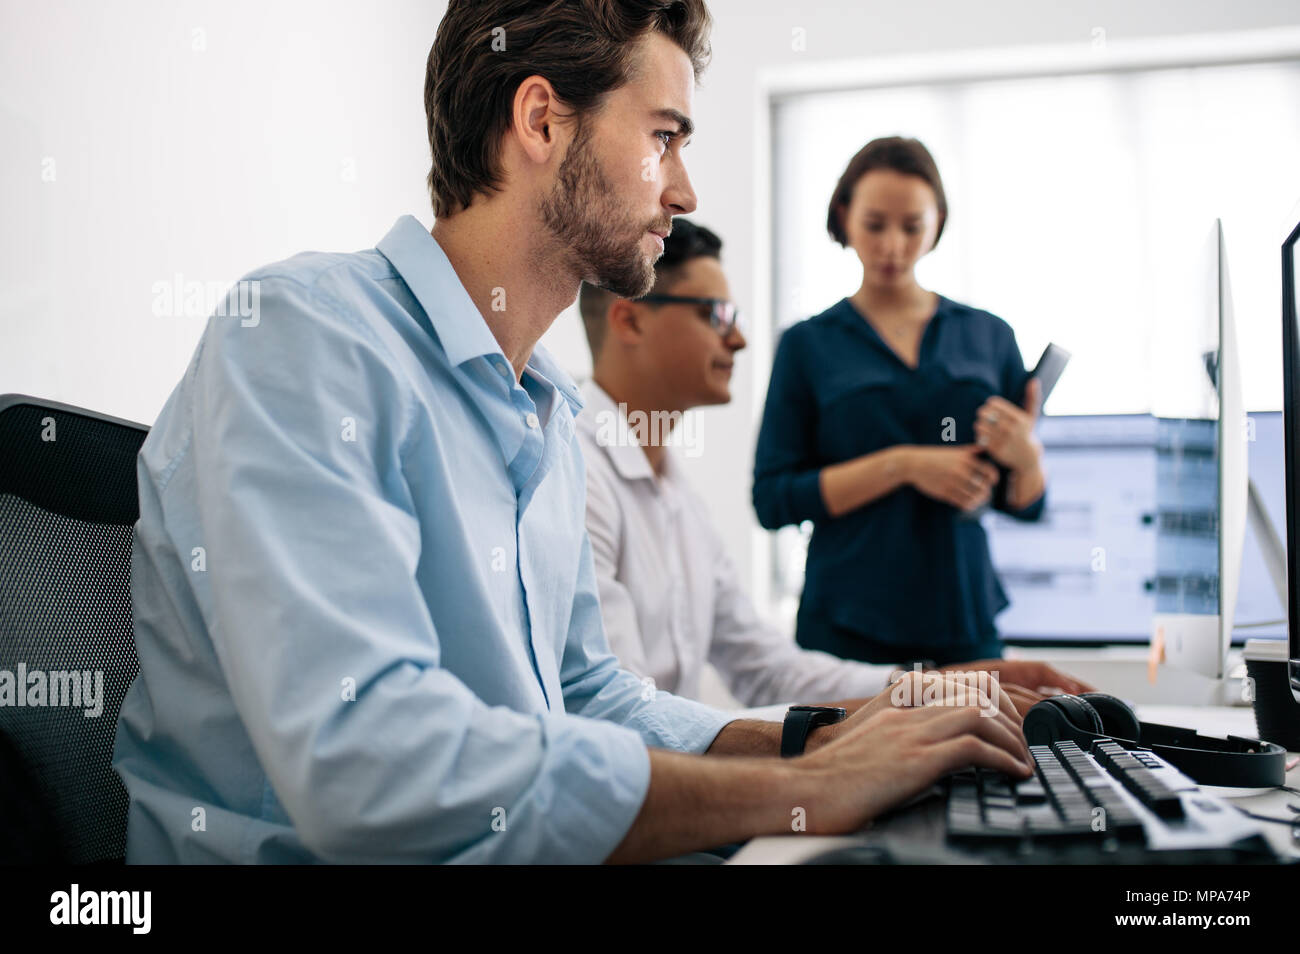 Software developers sitting at office working on computers. Two men developing applications on computer while a female colleague looks on. - Stock Image